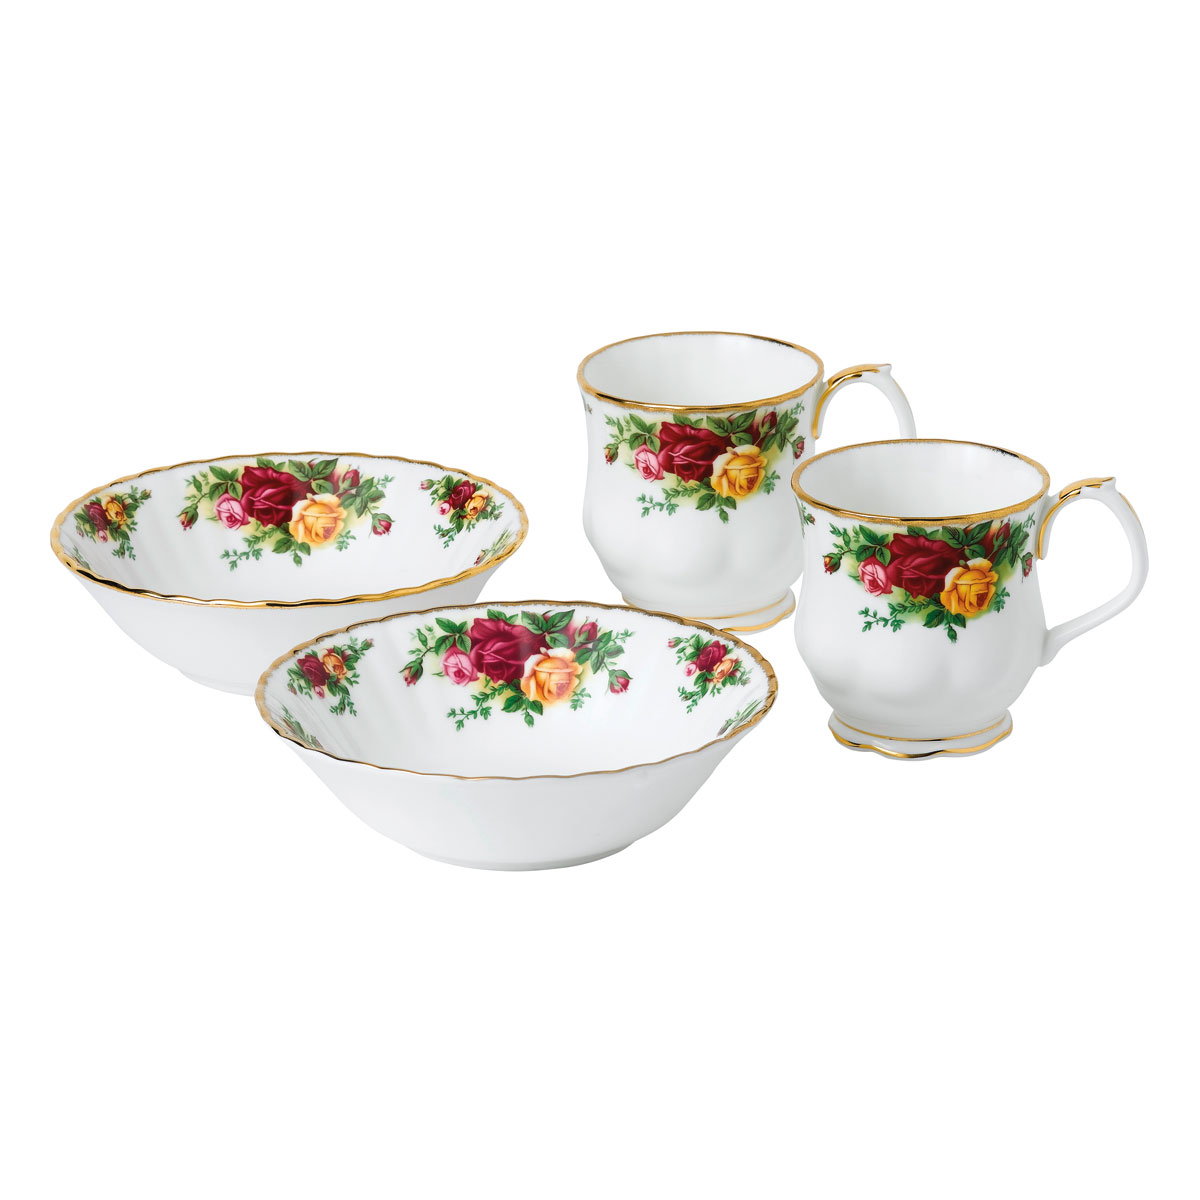 Royal Albert Old Country Roses 4-Piece Breakfast Set, Two Cereal Bowls and Two Montrose Mugs